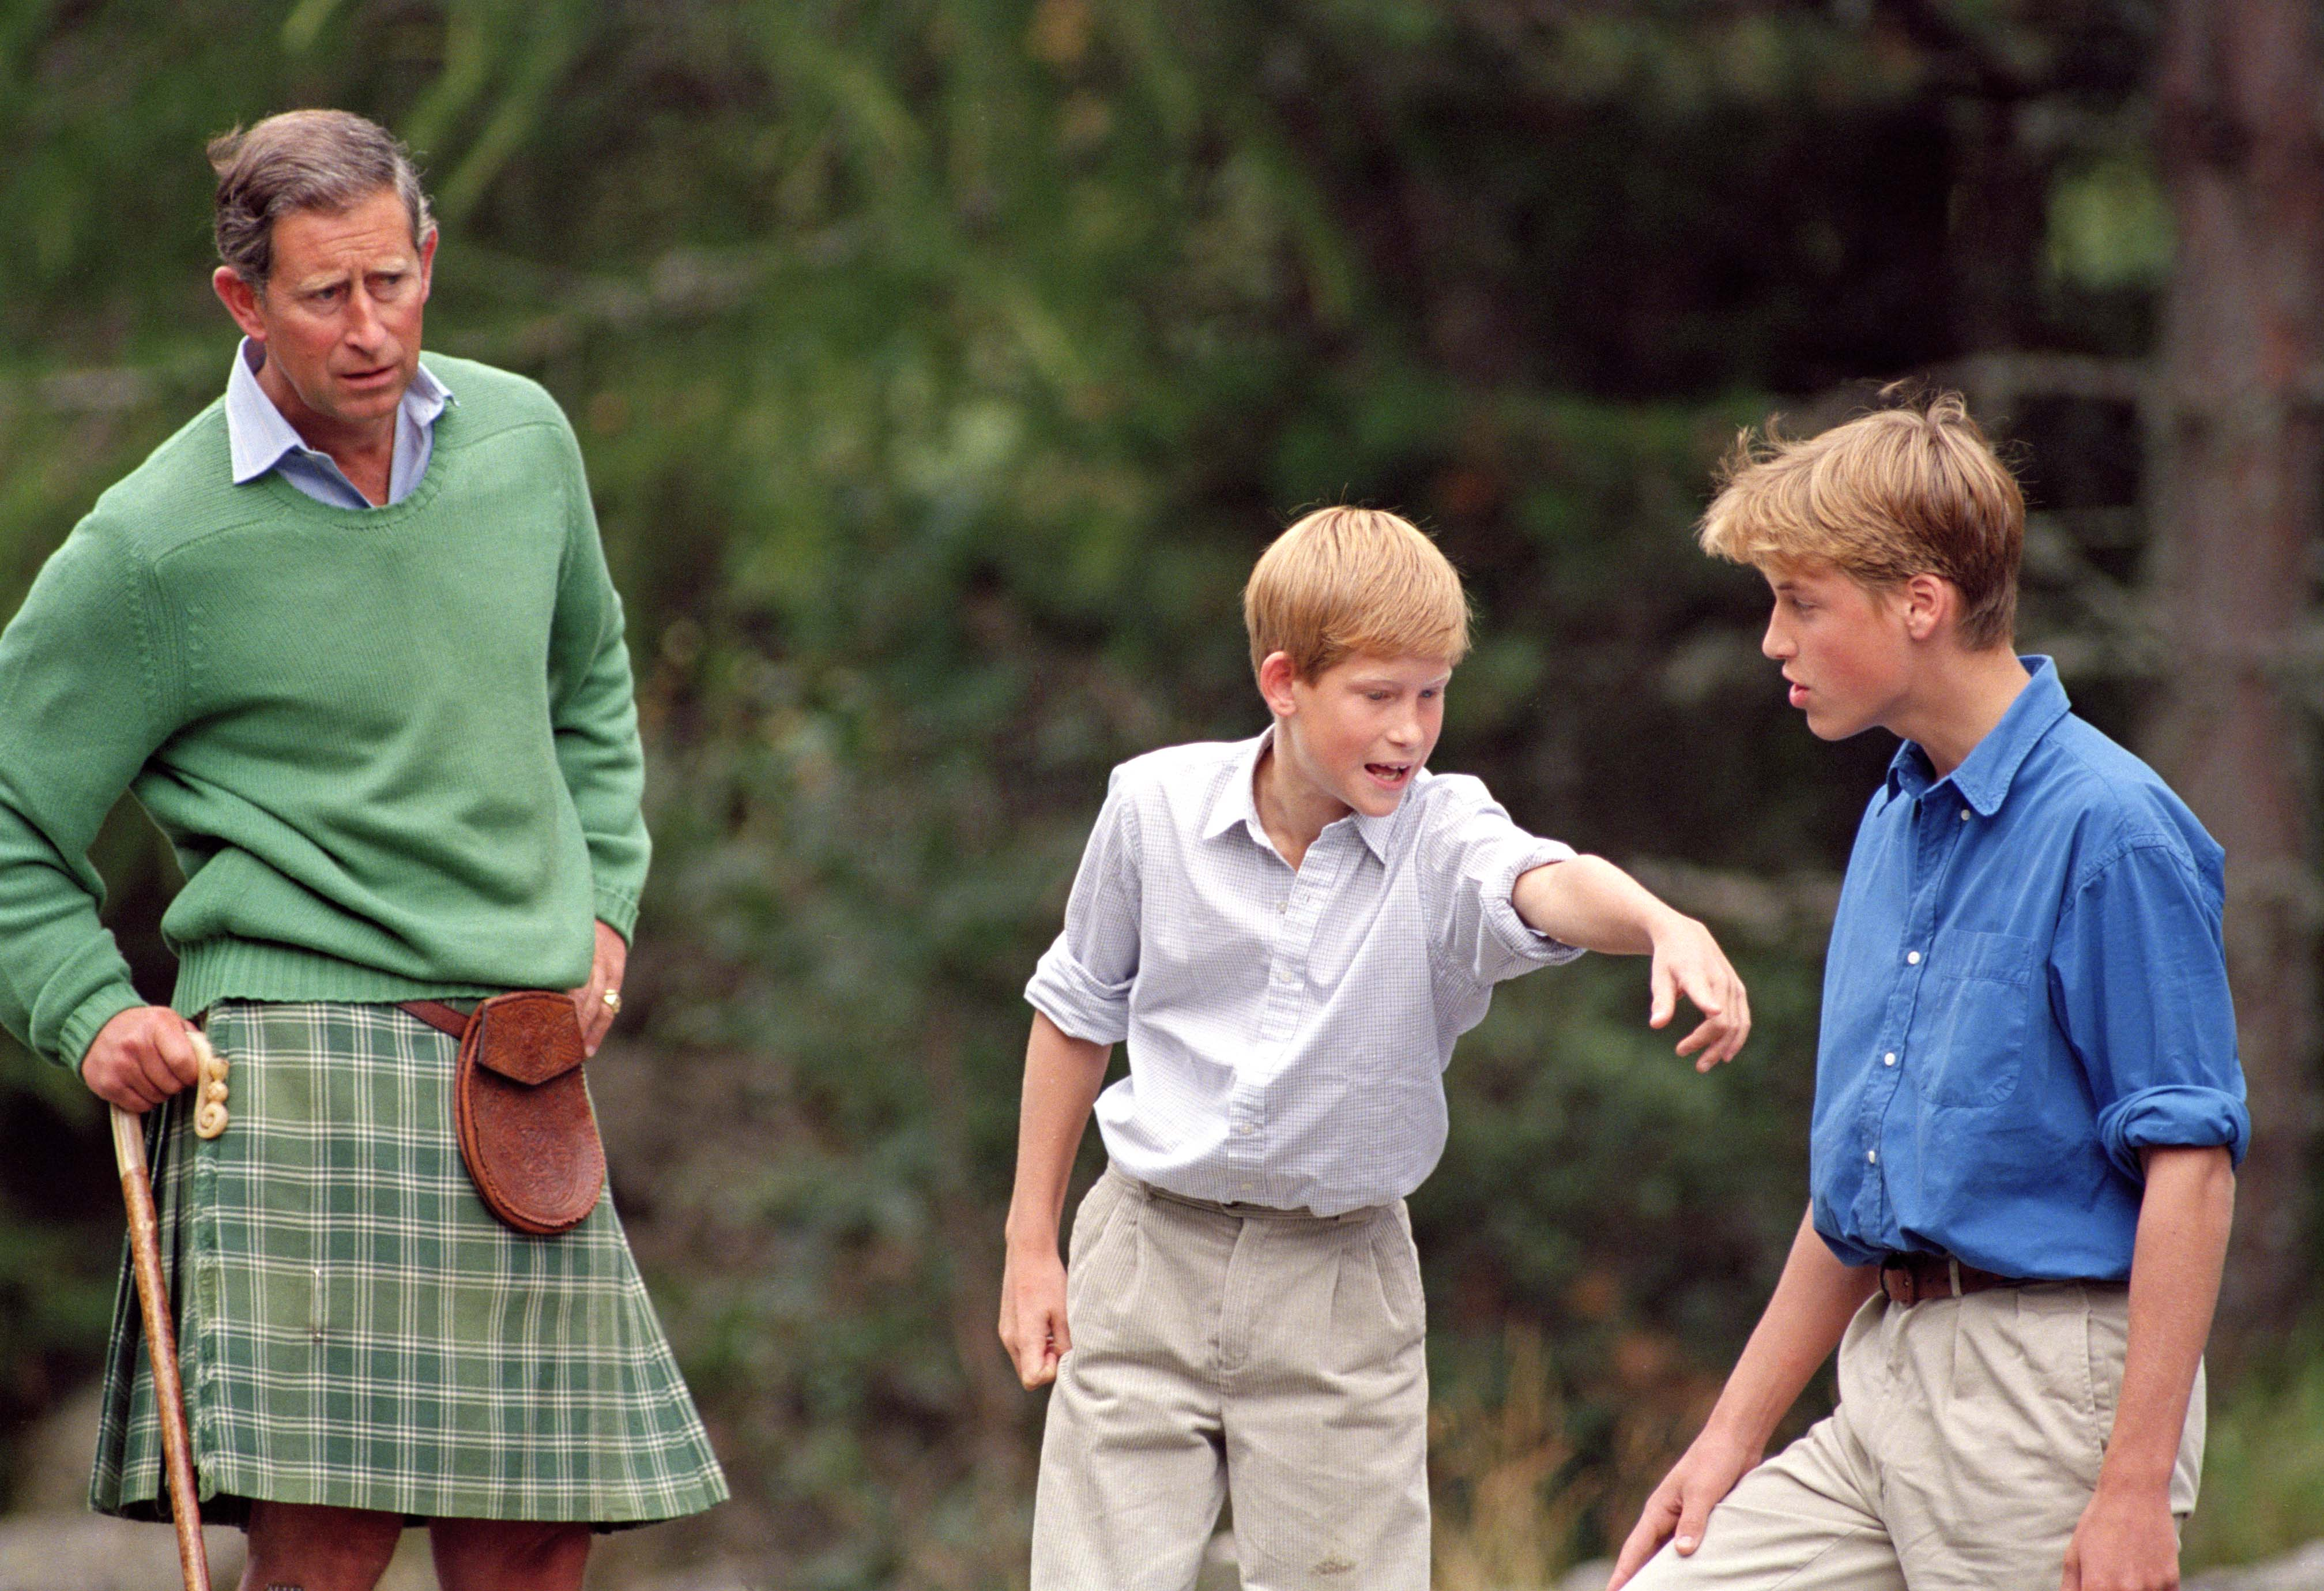 The Prince of Wales and Princes William and Harry at Balmoral Castle in Scotland on Aug. 16, 1997.